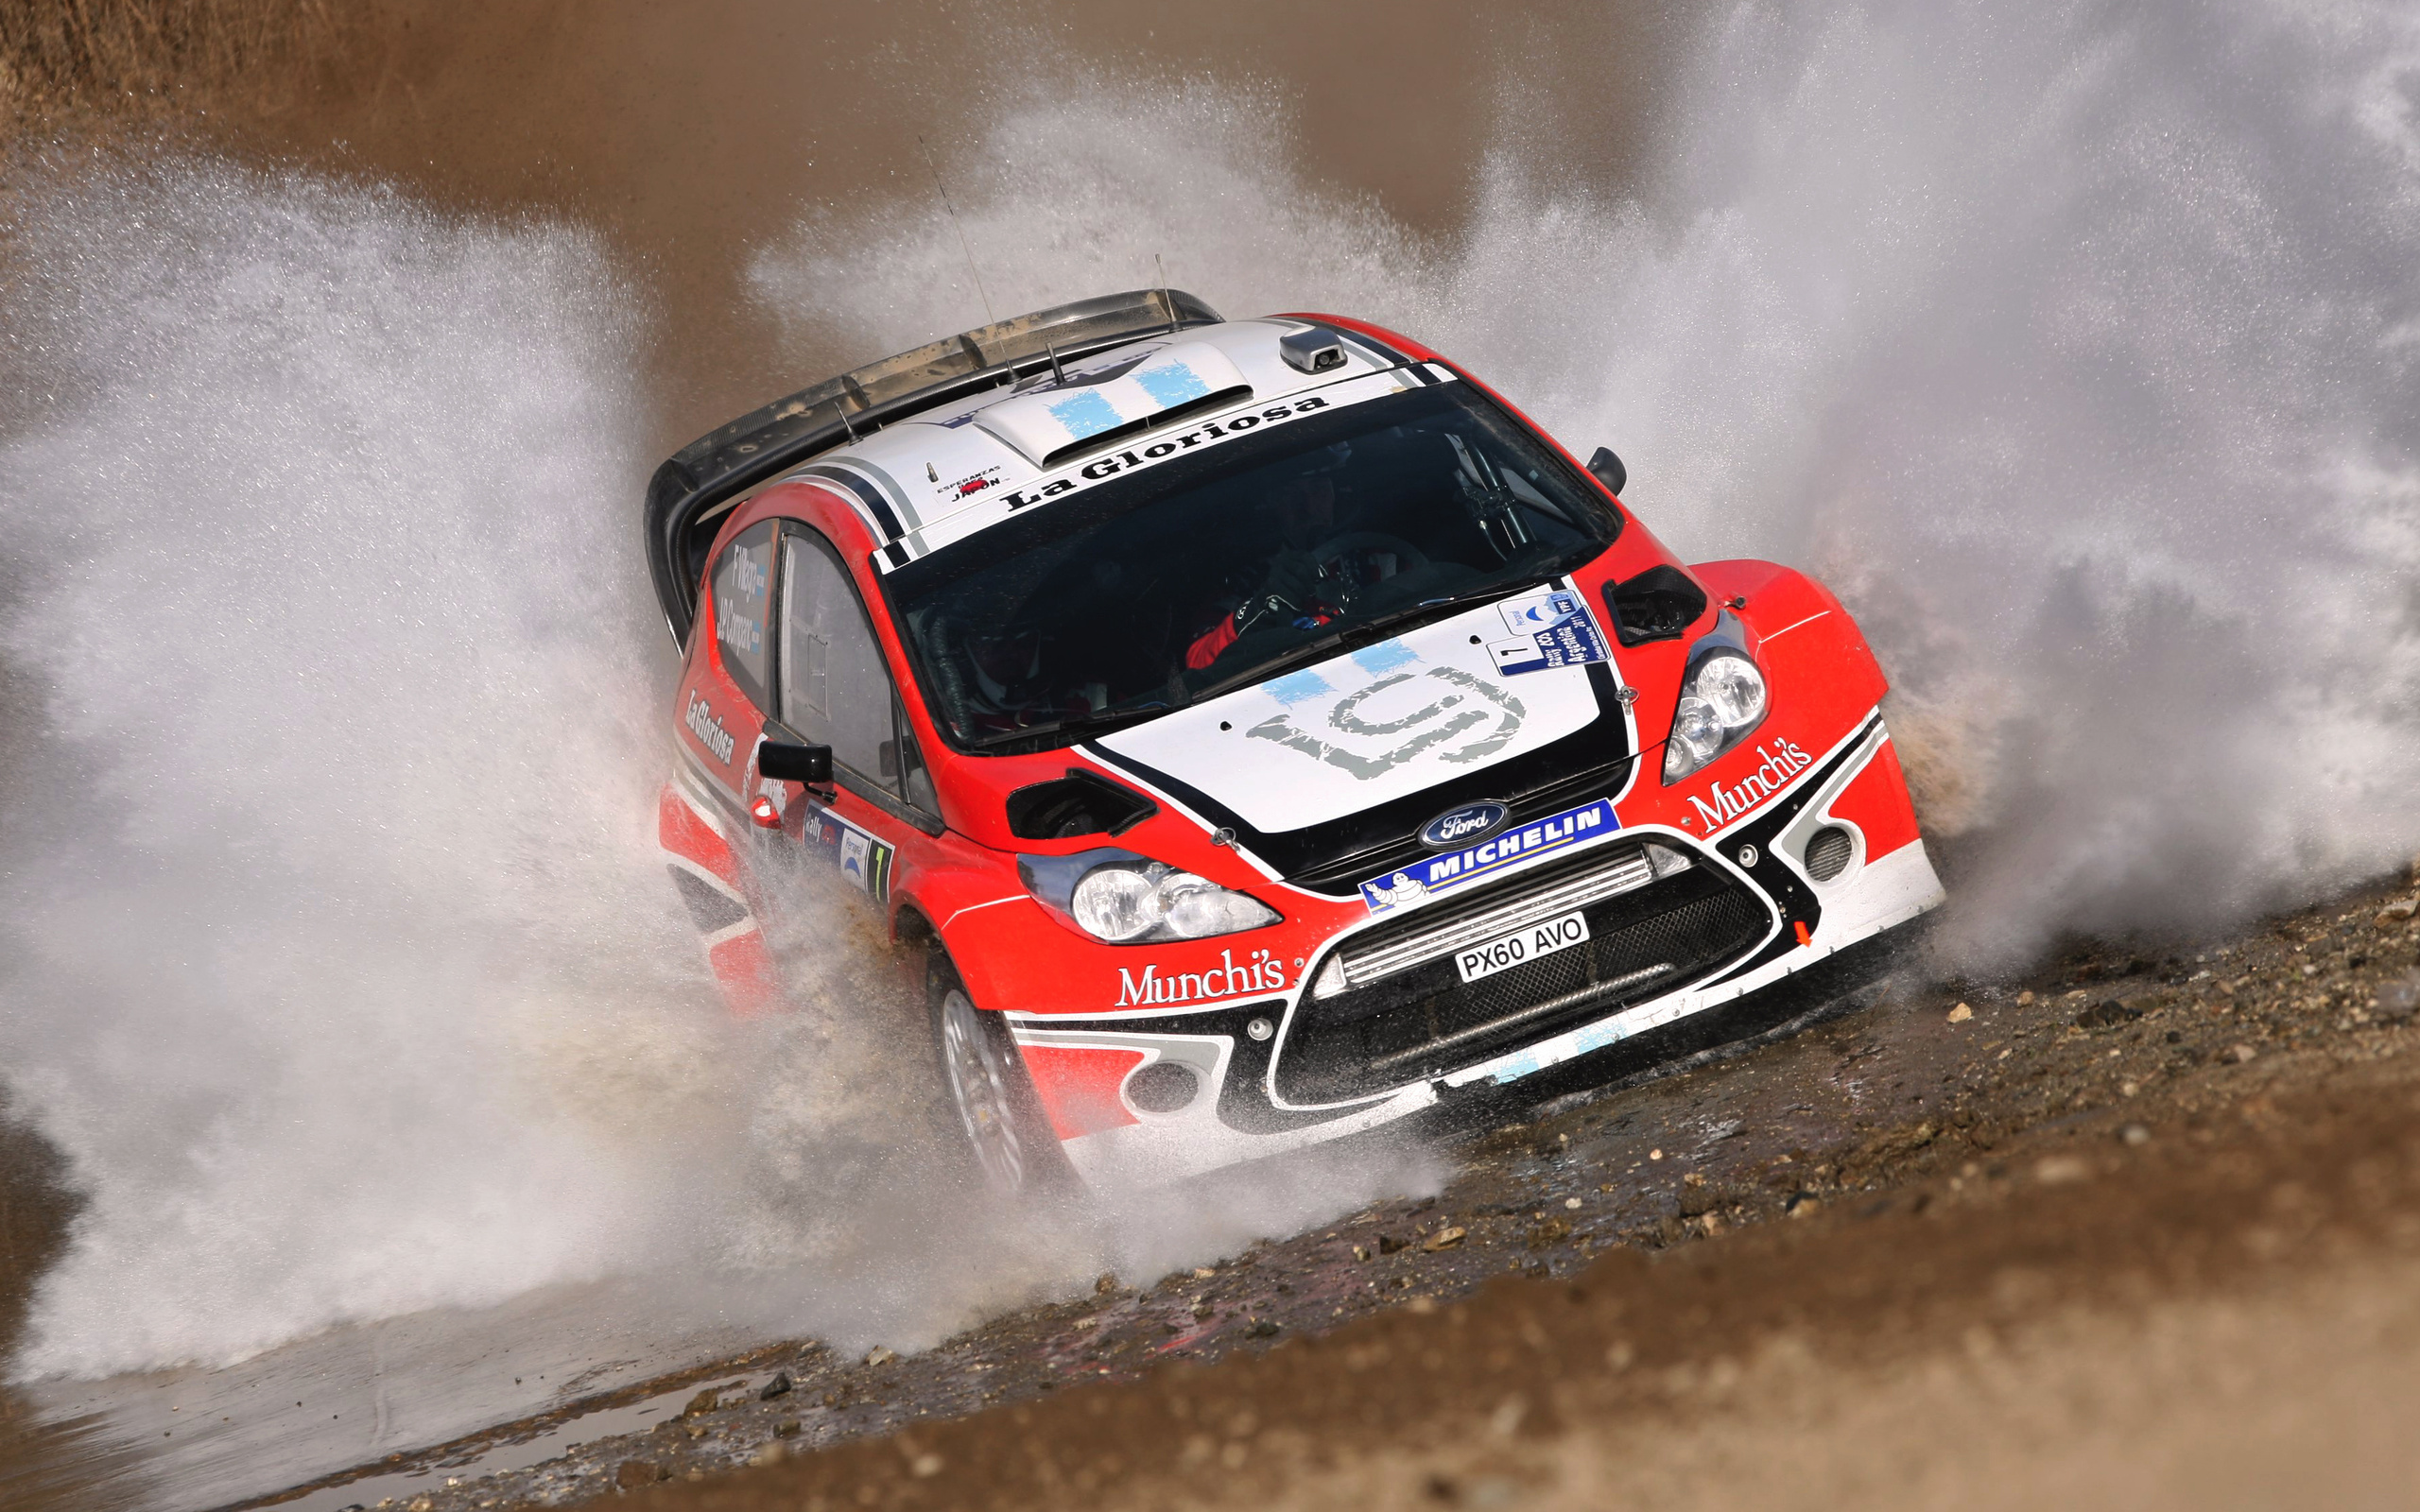 Car wrc fiesta rally ford cars speed race racing wallpaper